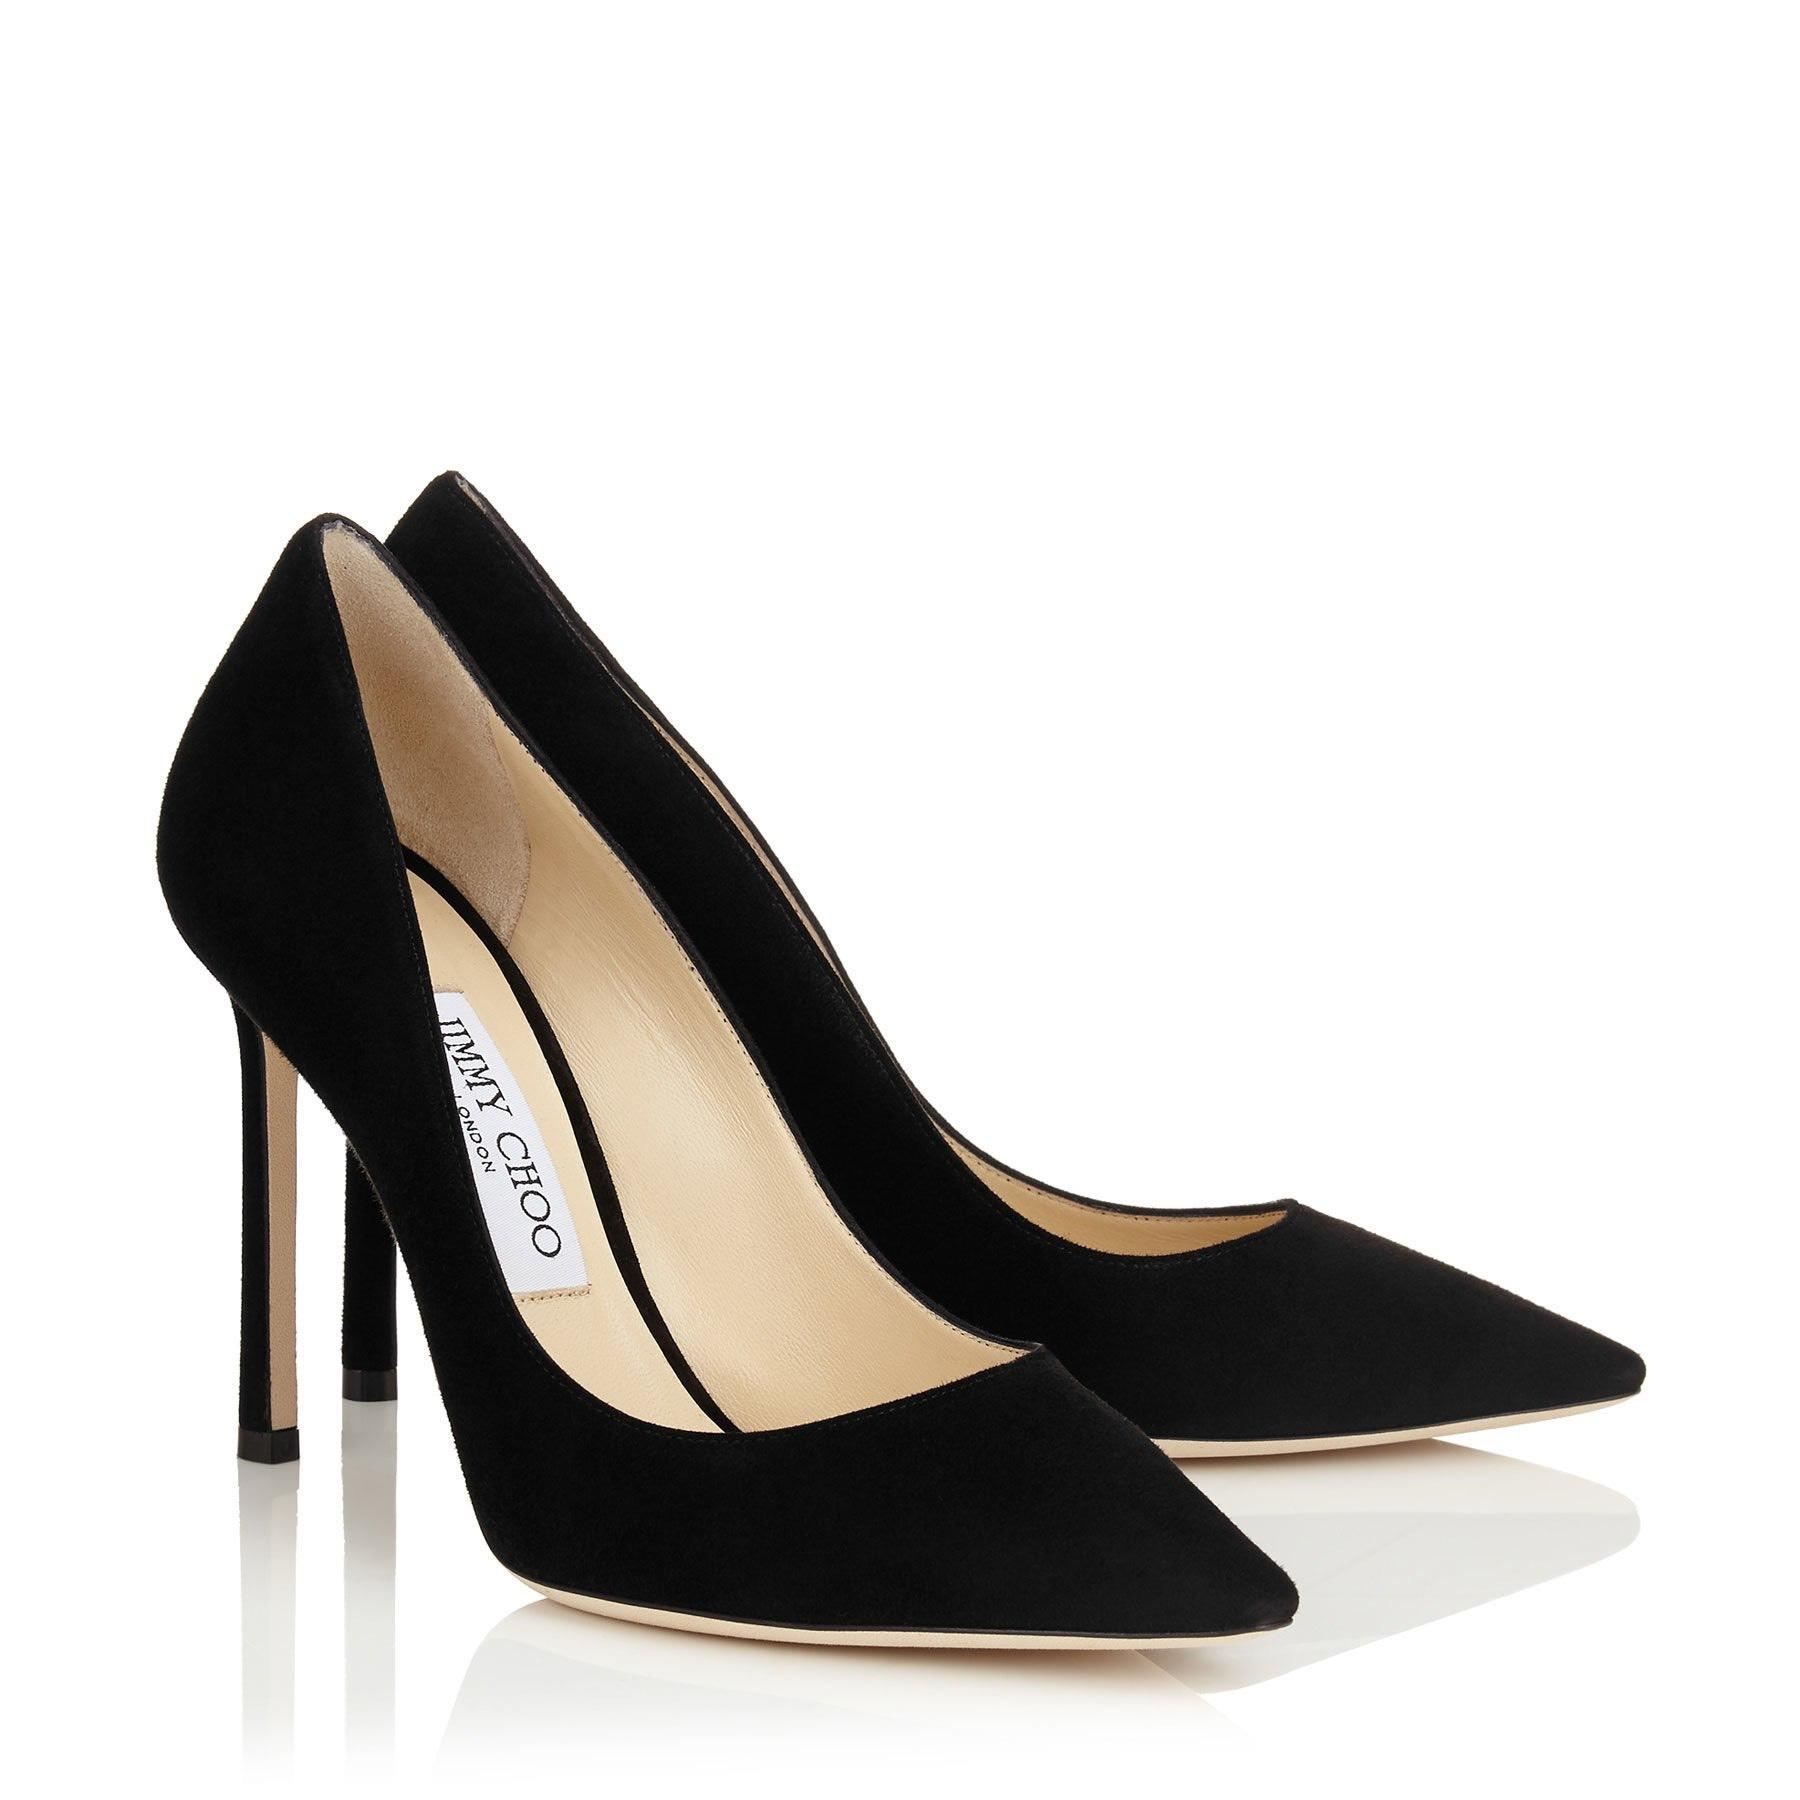 Visit New Online Many Kinds Of Online Jimmy choo Romy 85 velvet pumps Outlet Cheap Prices Sale 100% Authentic Clearance 100% Guaranteed xagRg53B4G